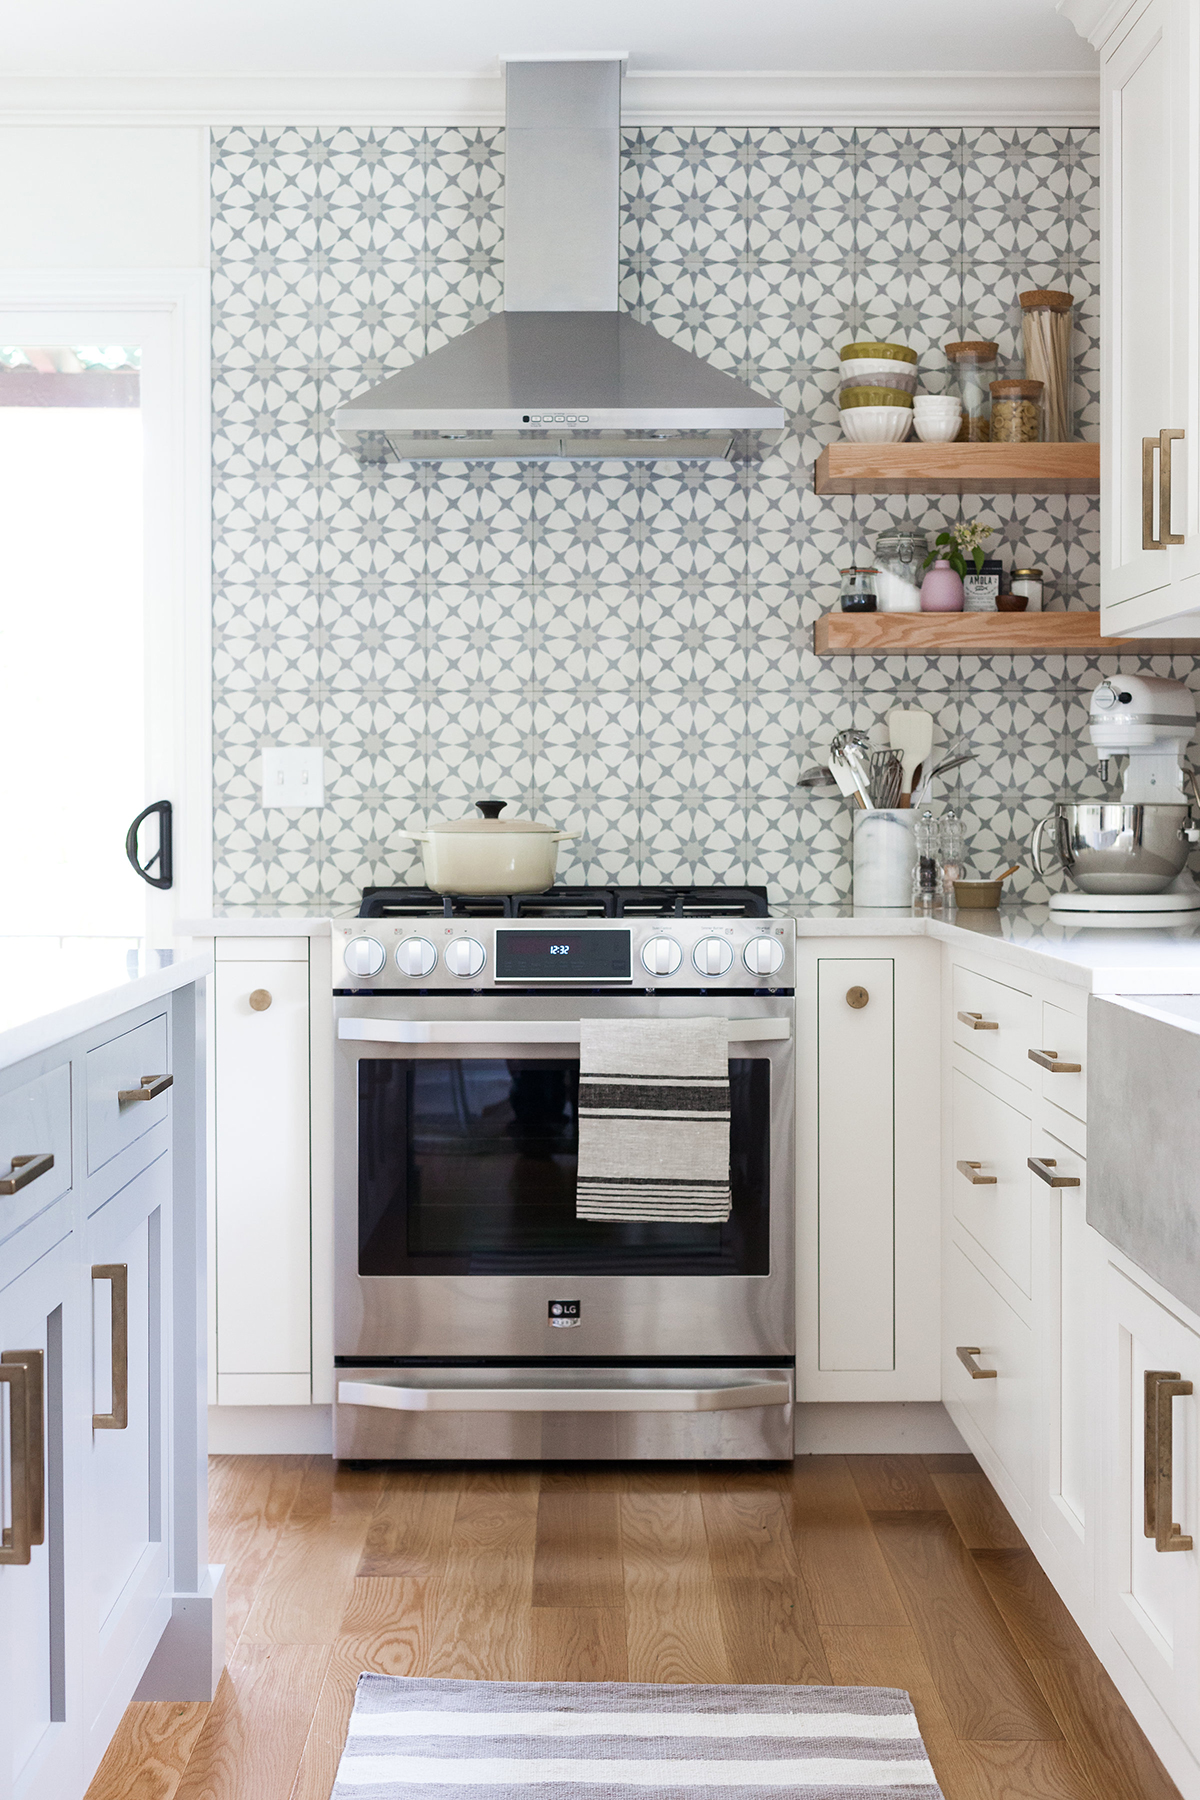 How to Renovate Your Home: Kitchen